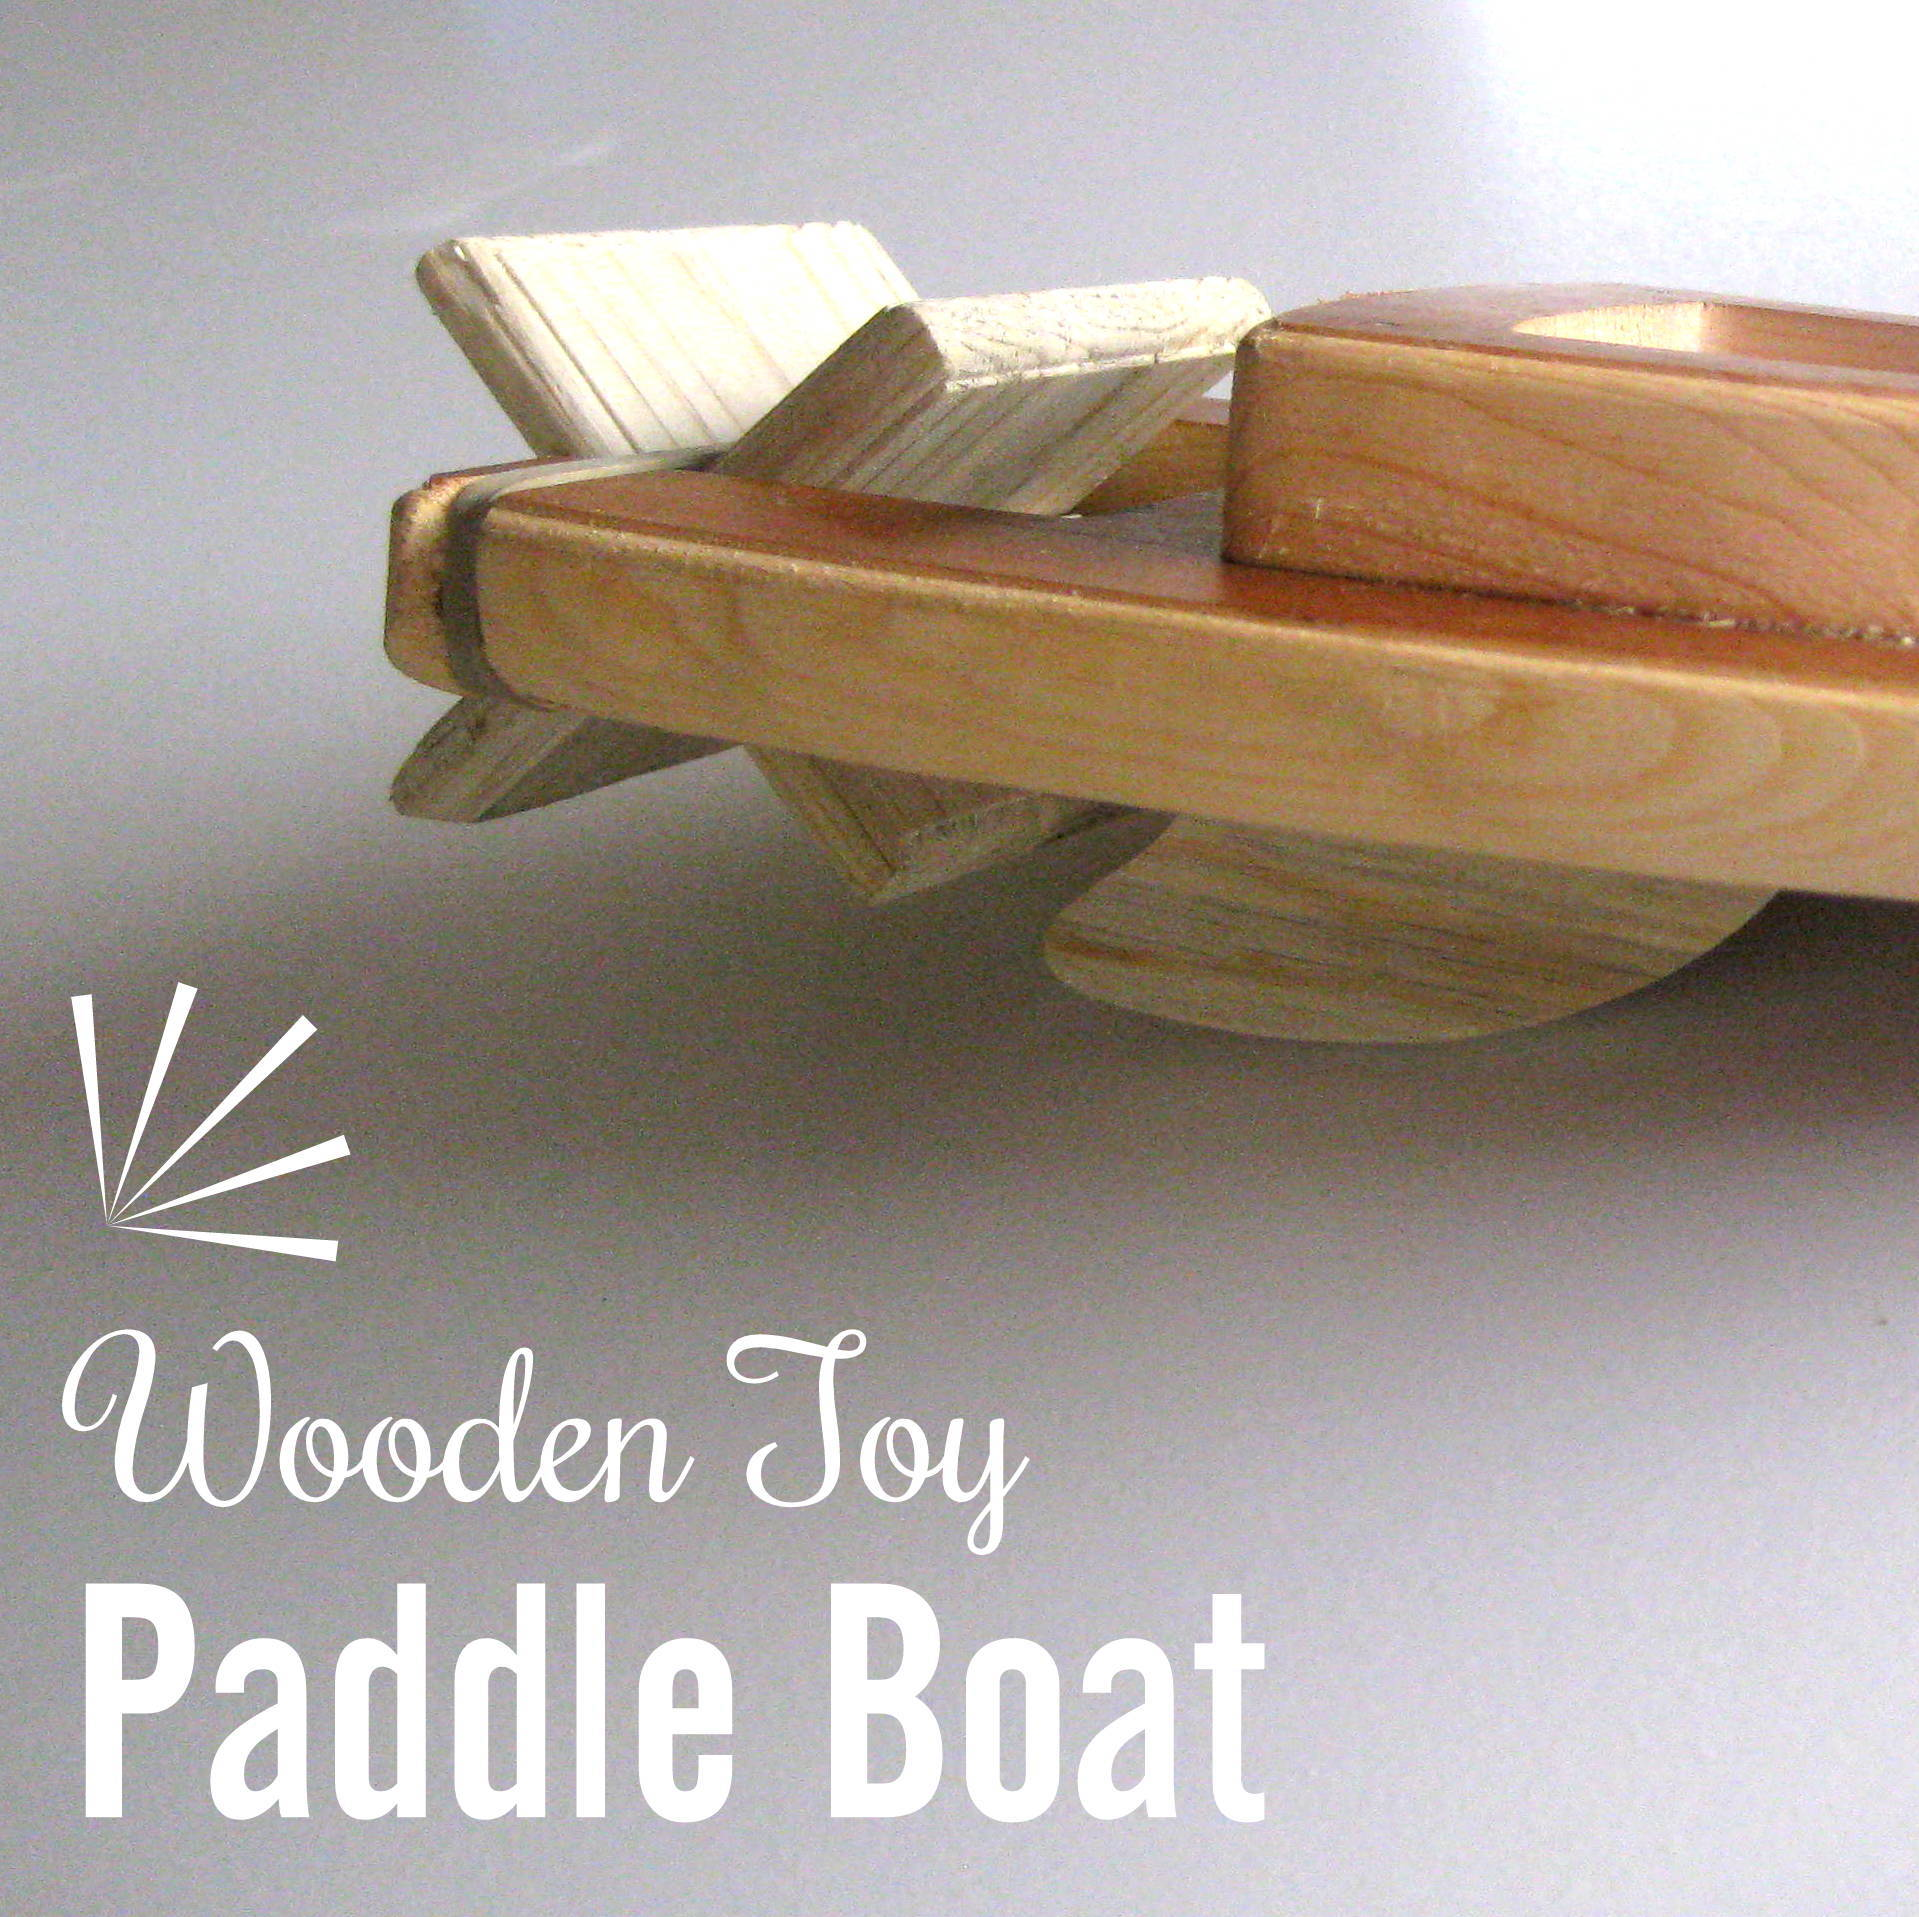 Wooden Paddle Boat Sawdust And Embryos